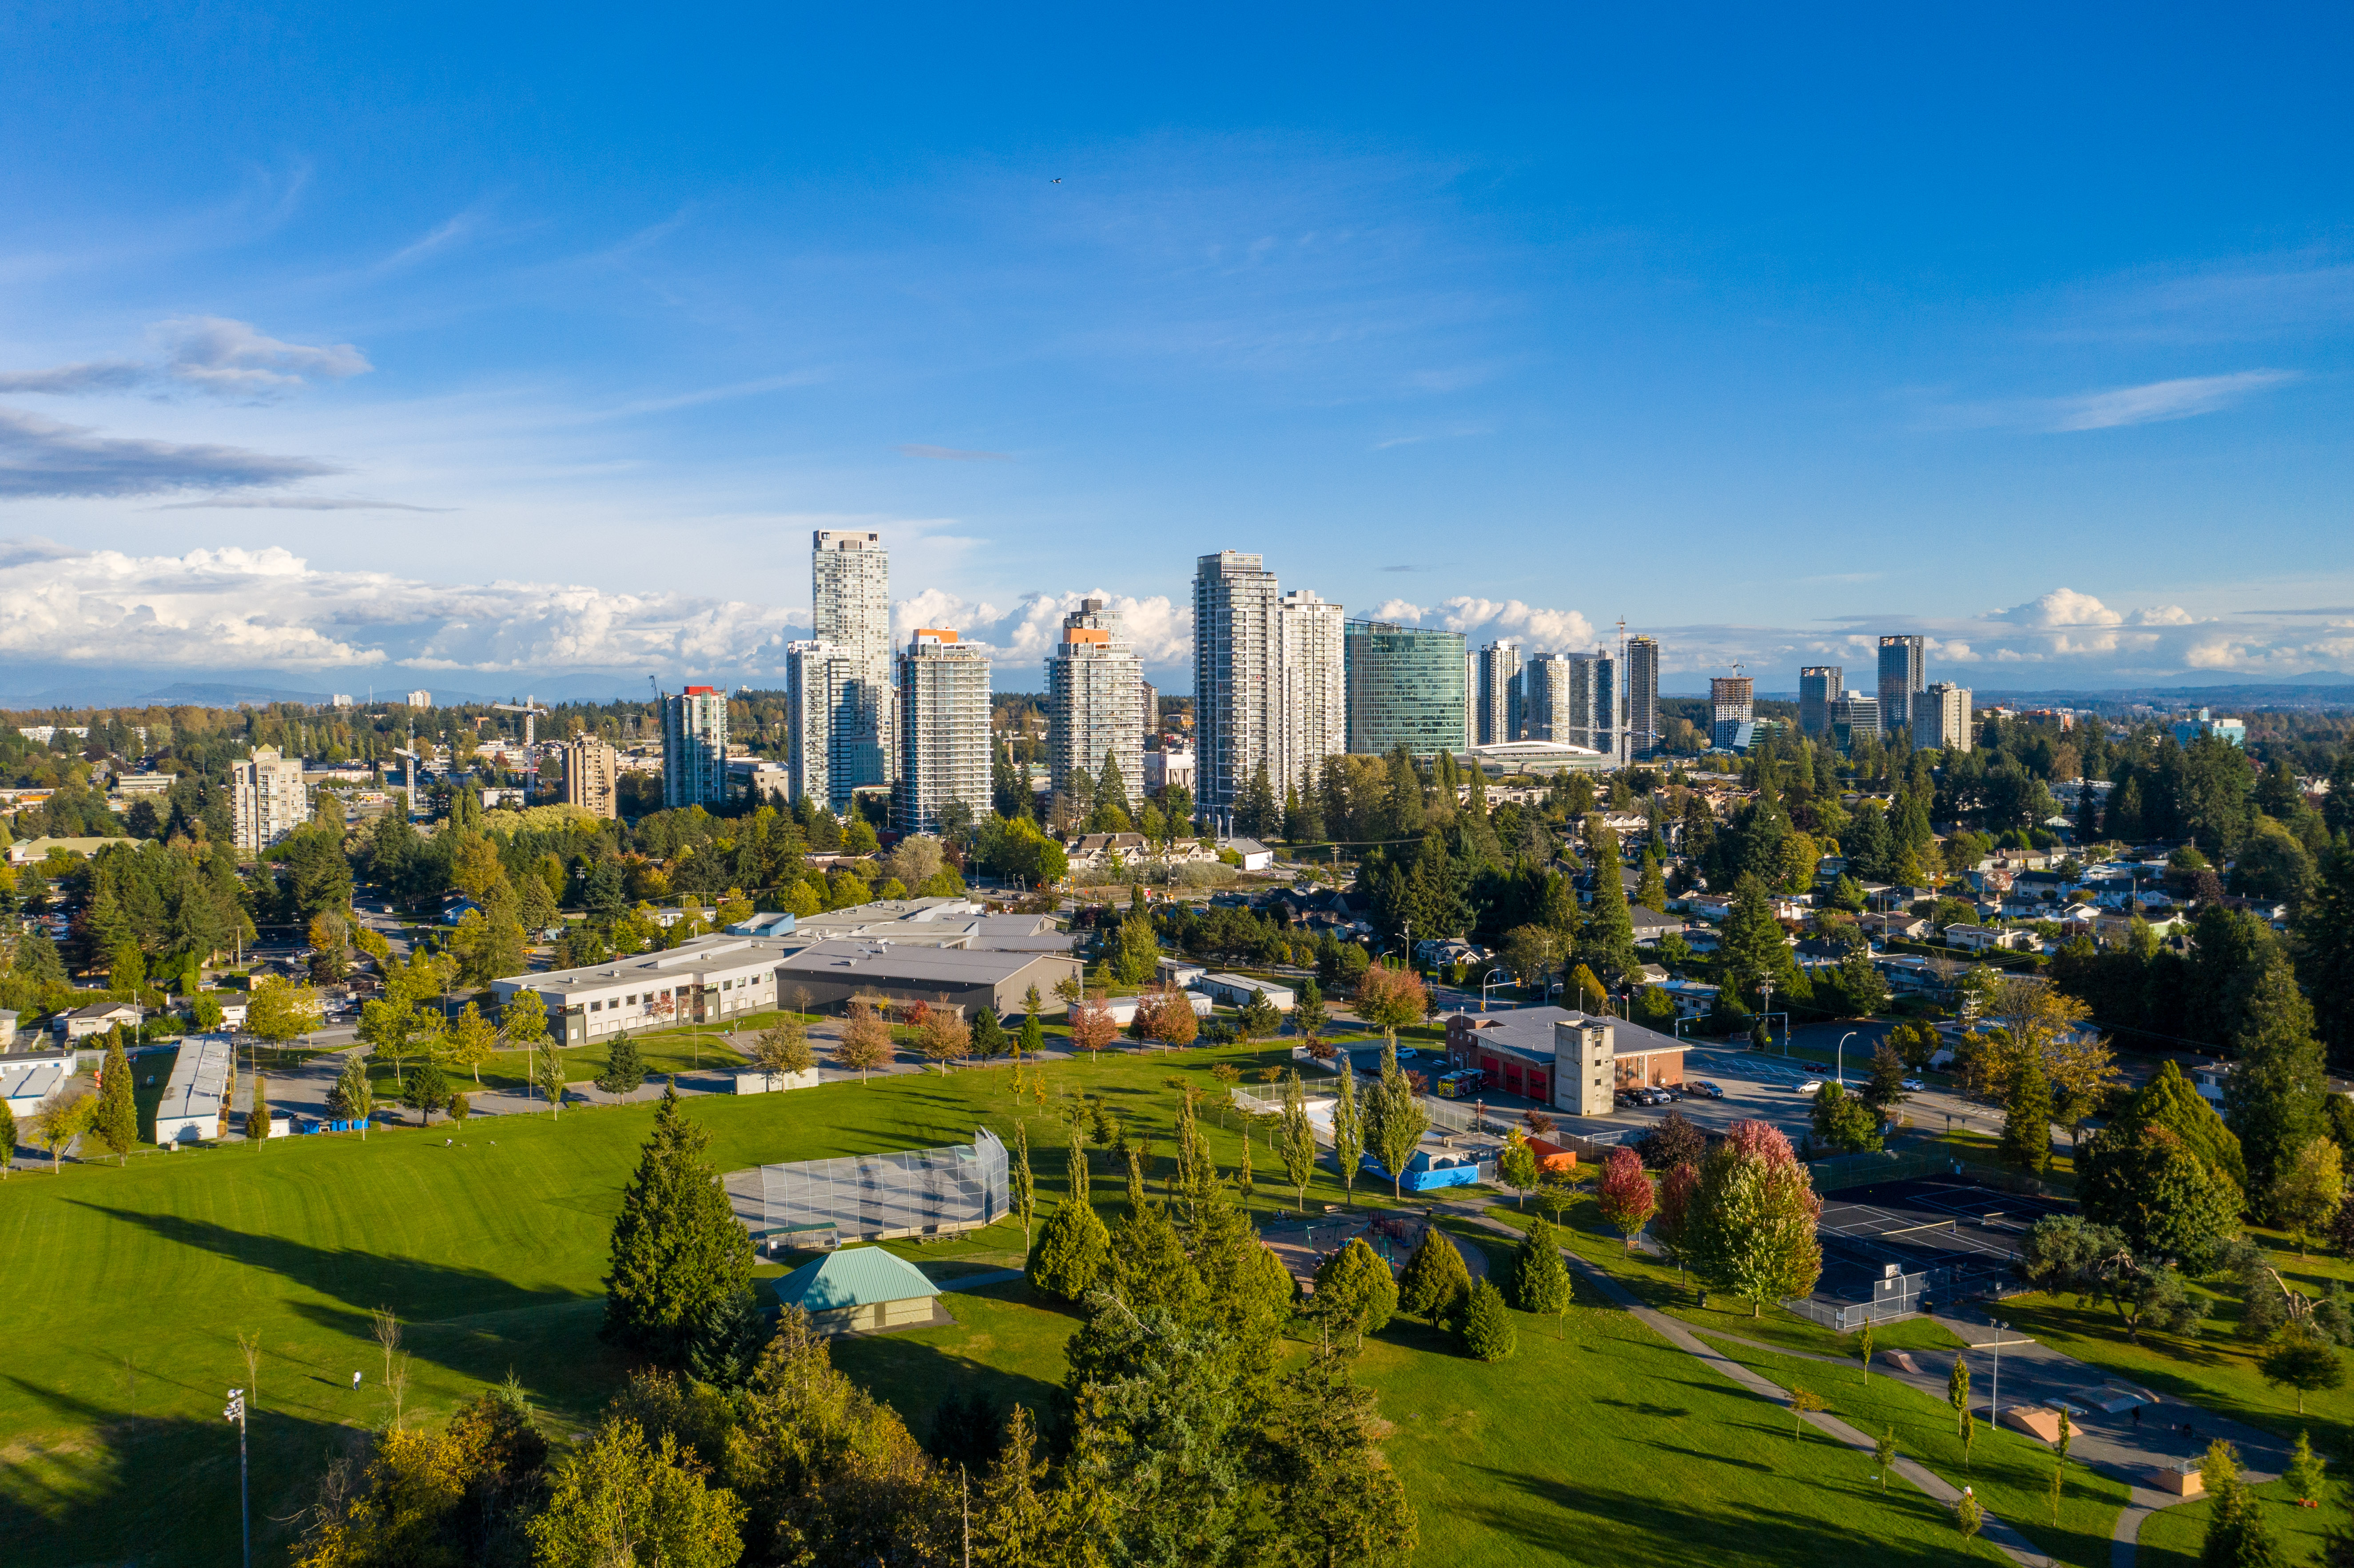 High rise apartments, offices and parks in Surrey City Centre's emerging downtown